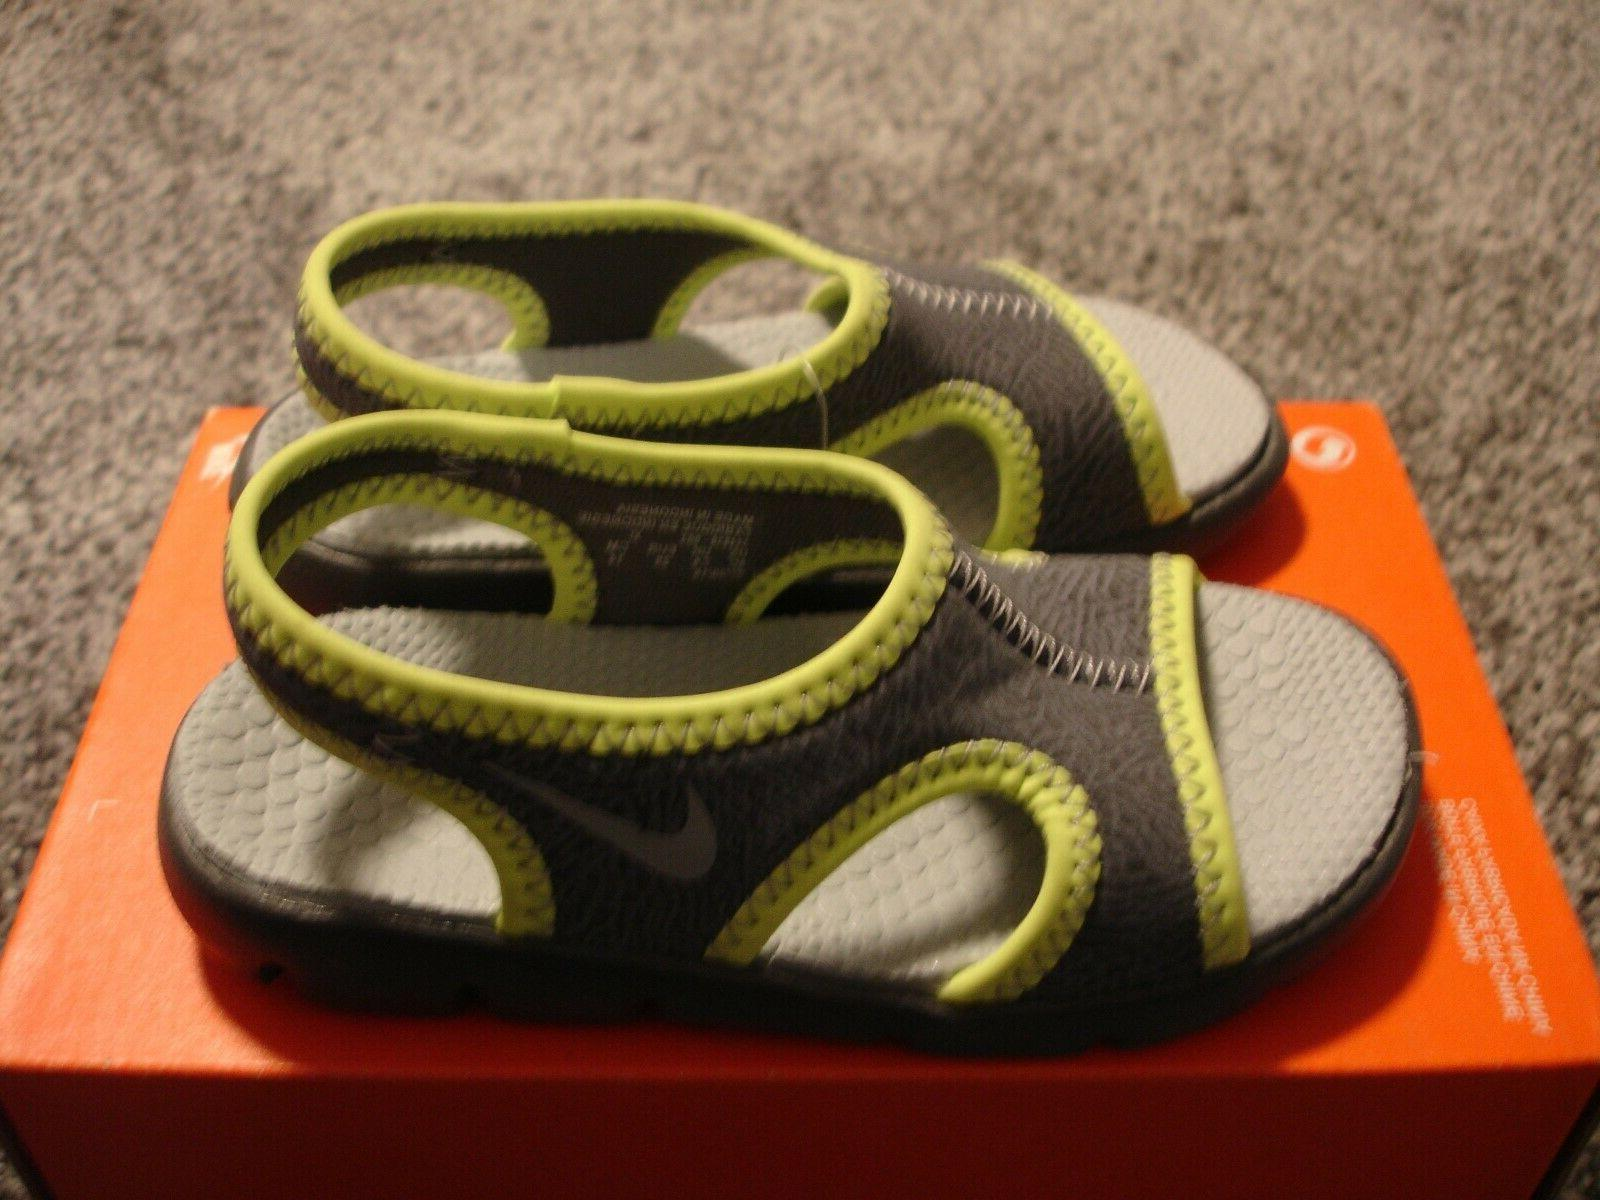 sunray 9 gray sandals water shoes toddler